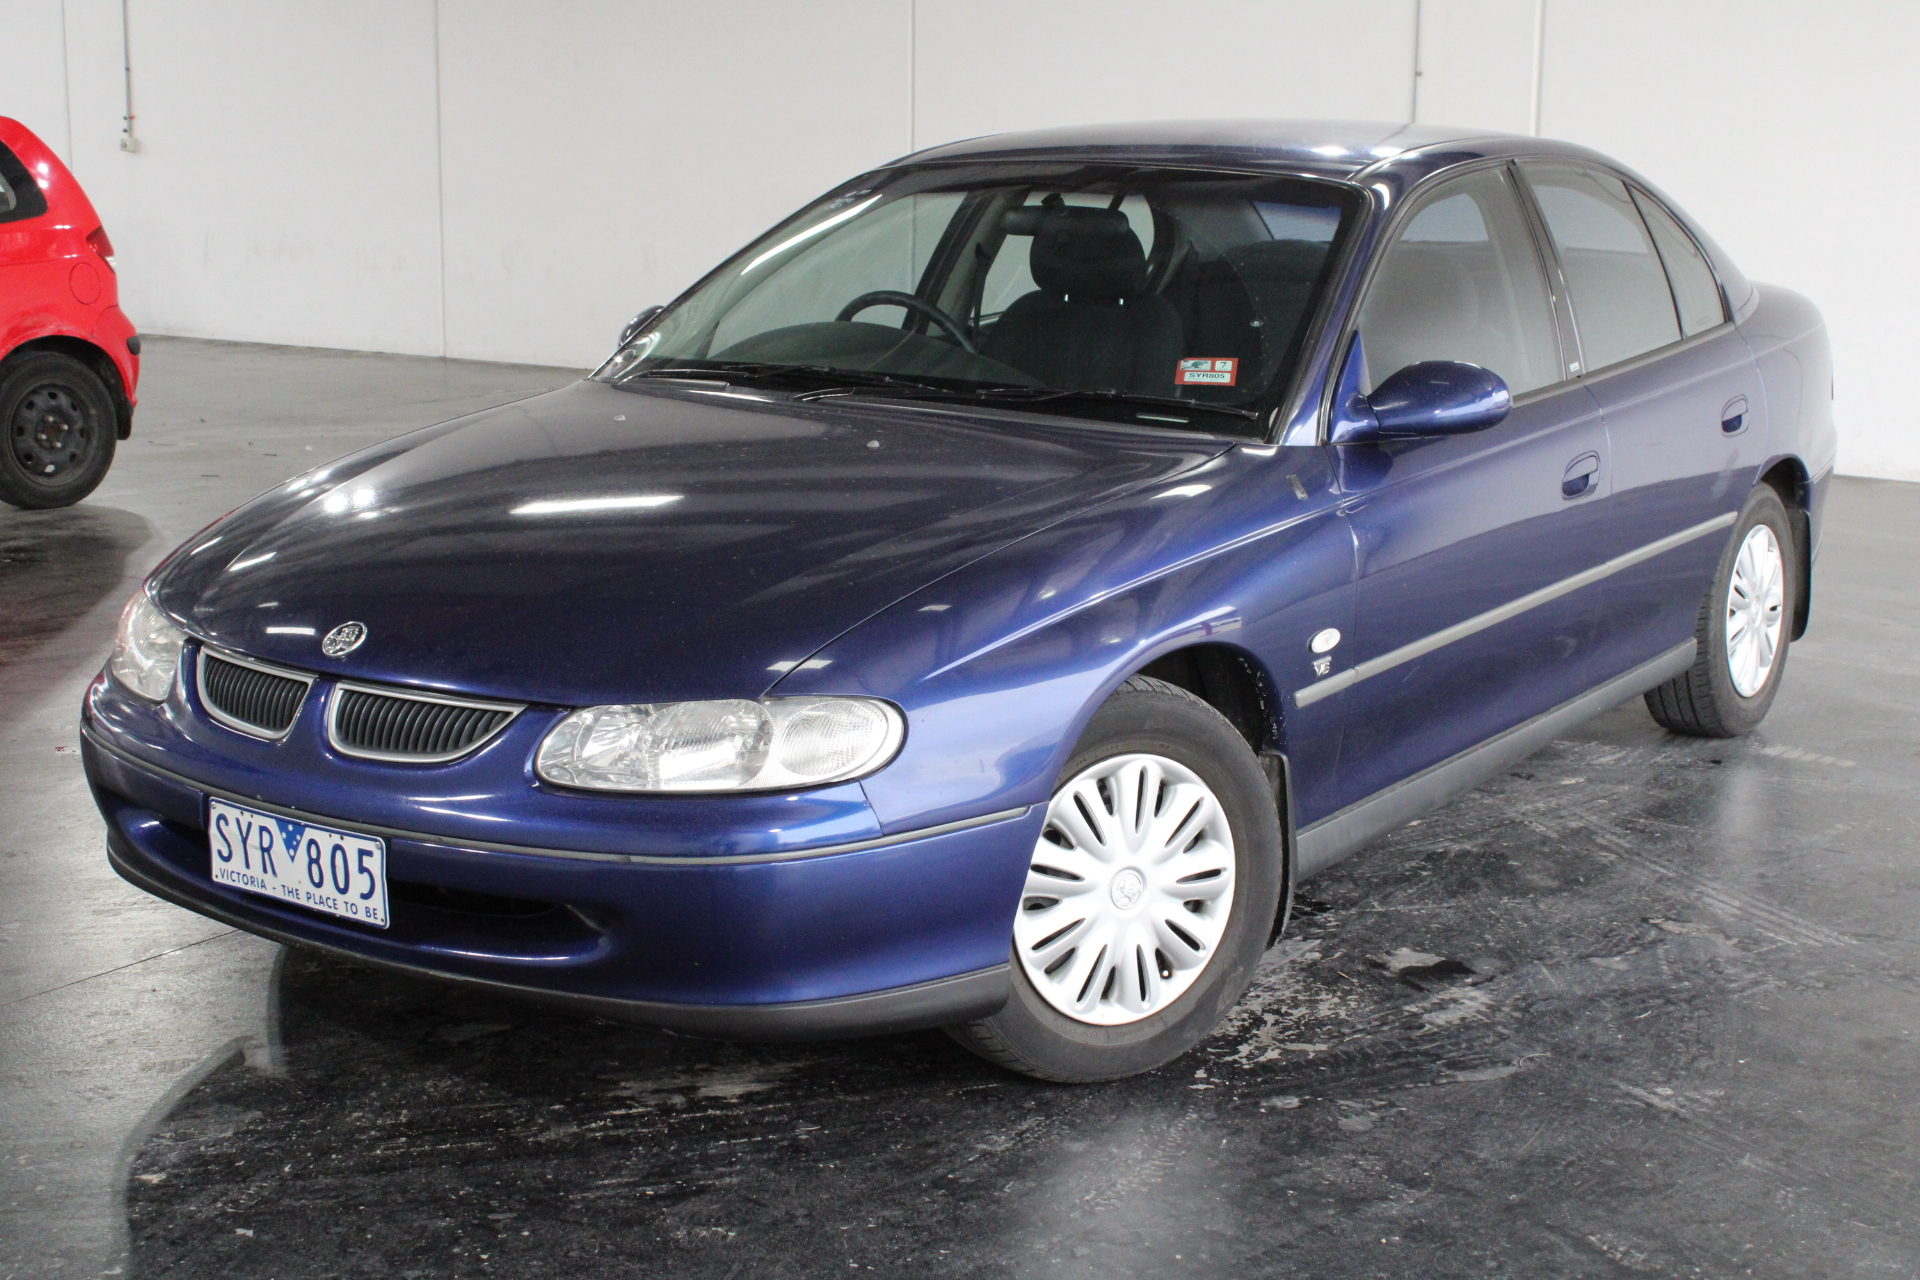 2000 Holden Commodore Acclaim VT Automatic Sedan